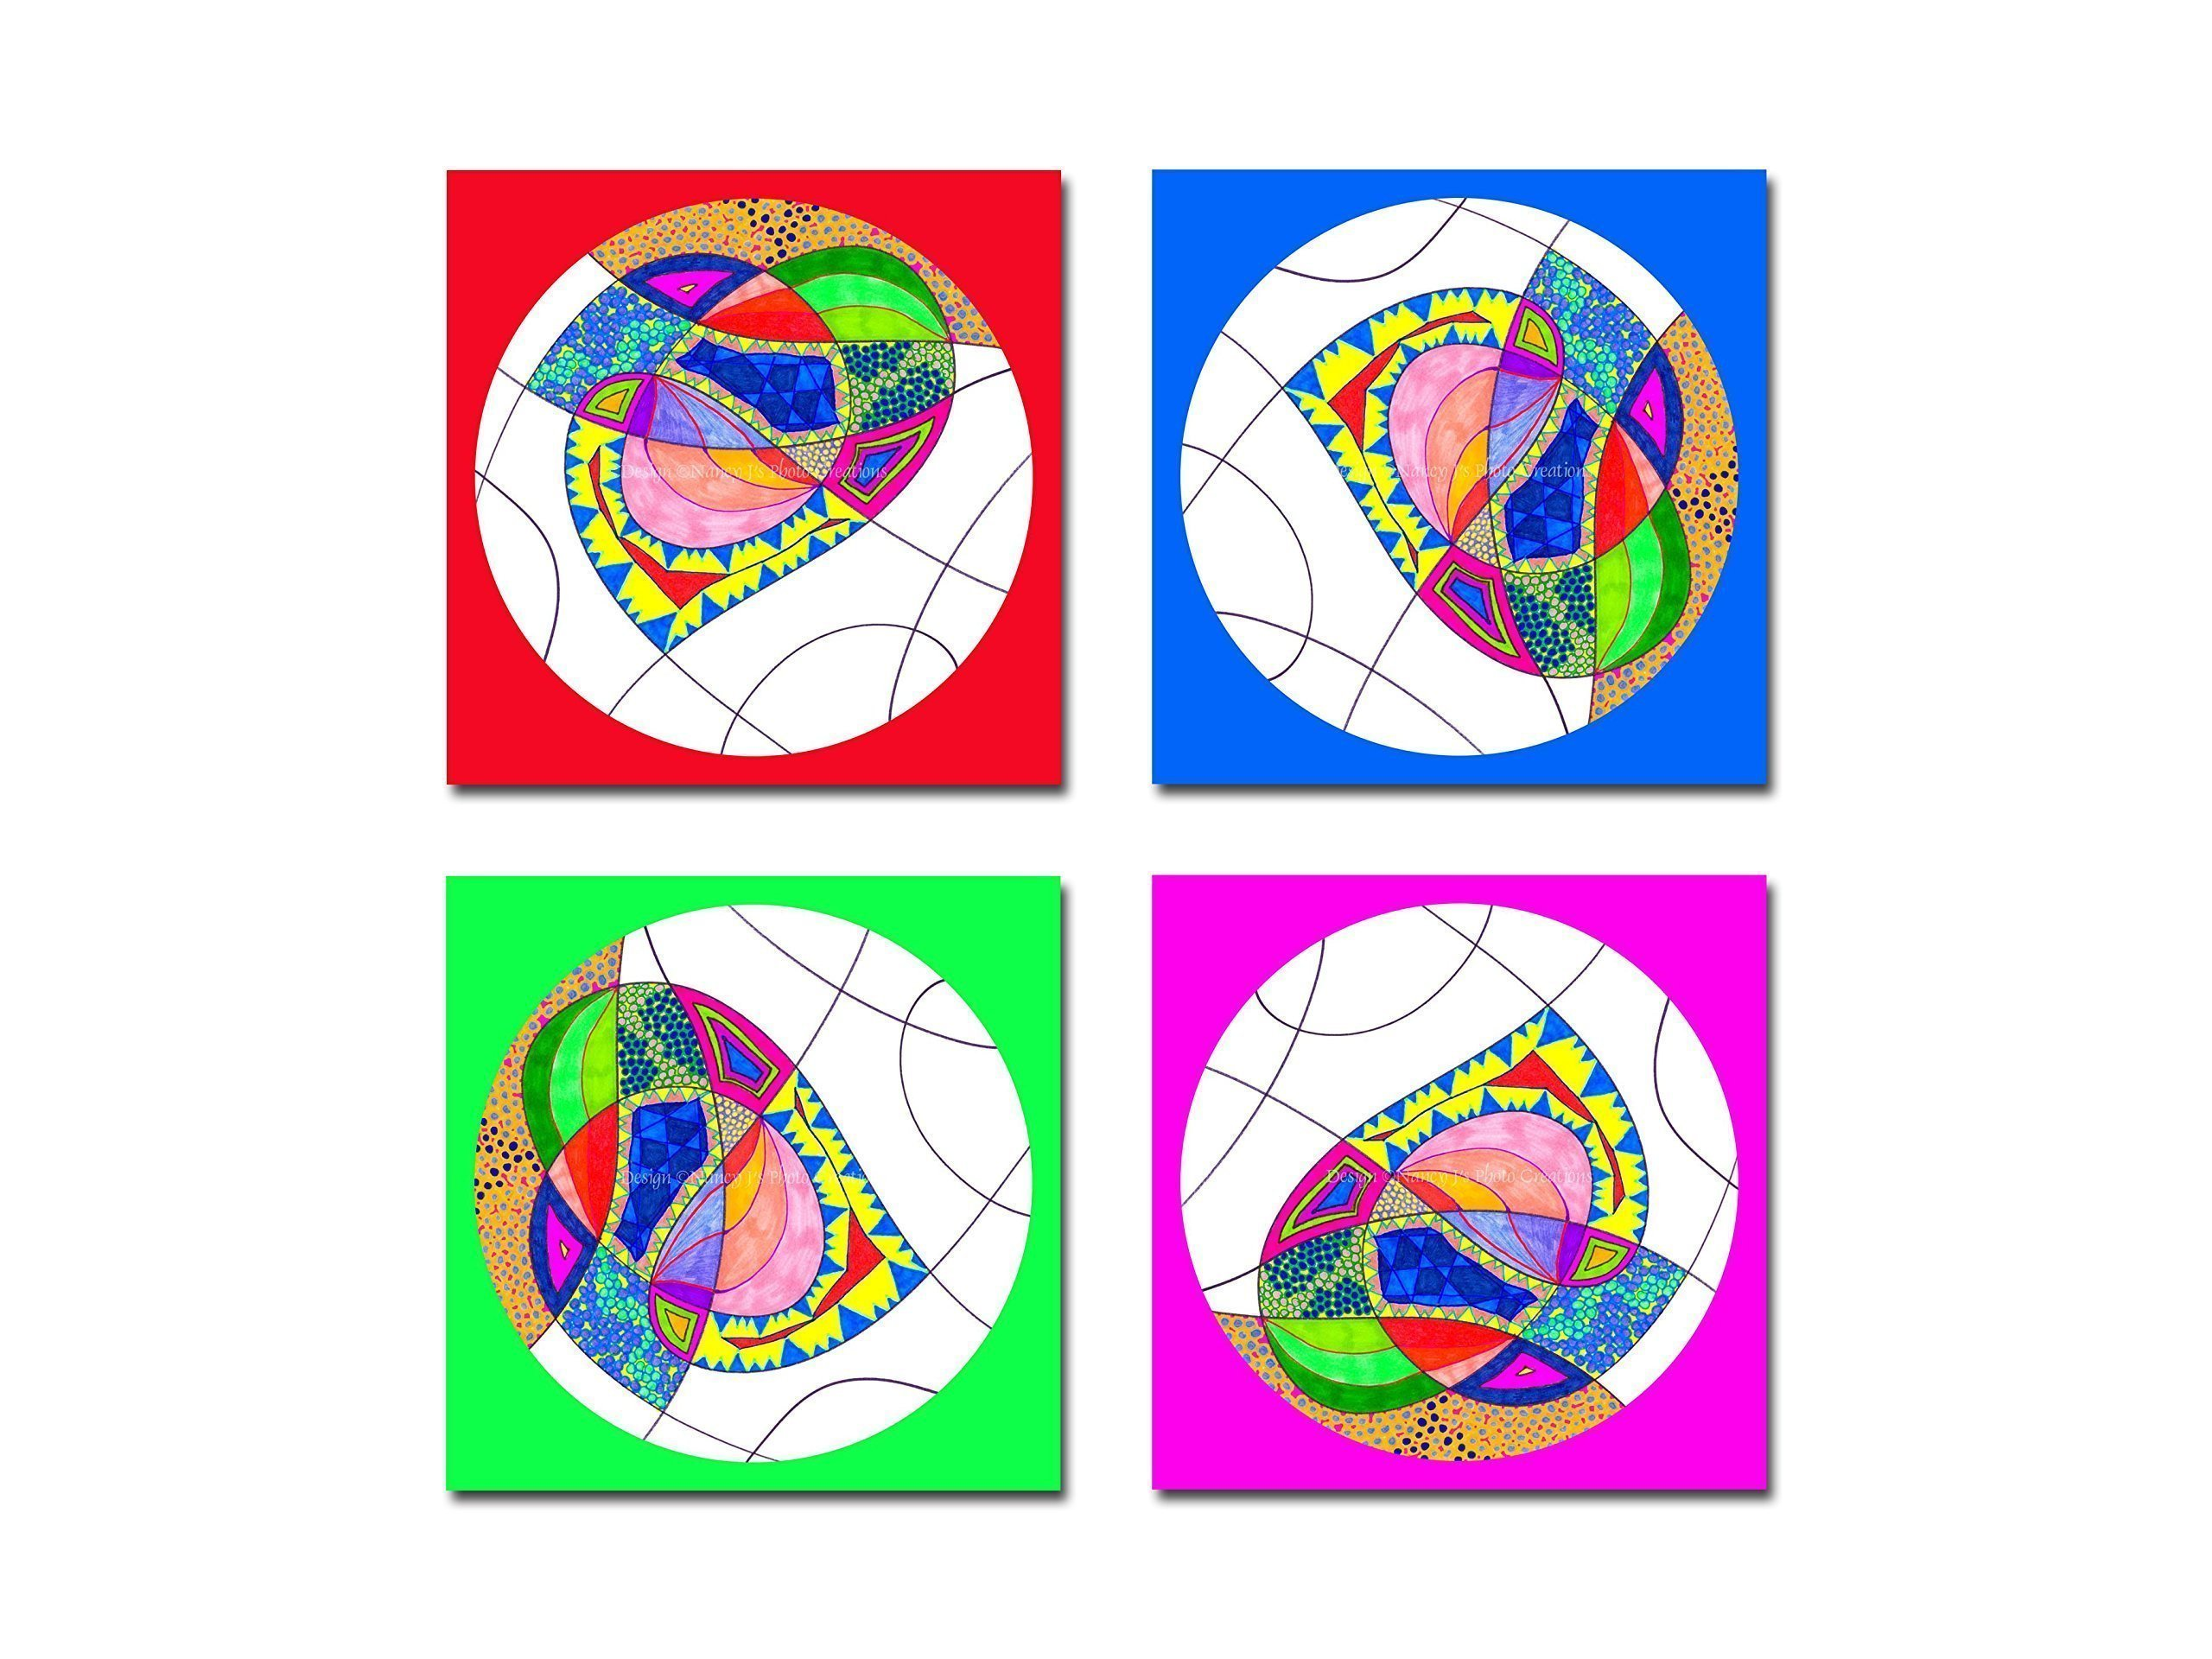 Children's Room Wall Art Unframed Bright Nursery Decor Boy's or Girl's Room Decoration Colorful Abstract Heart Freehand Drawing Discount Custom Print Set 5x5 8x8 10x10 12x12 16x16